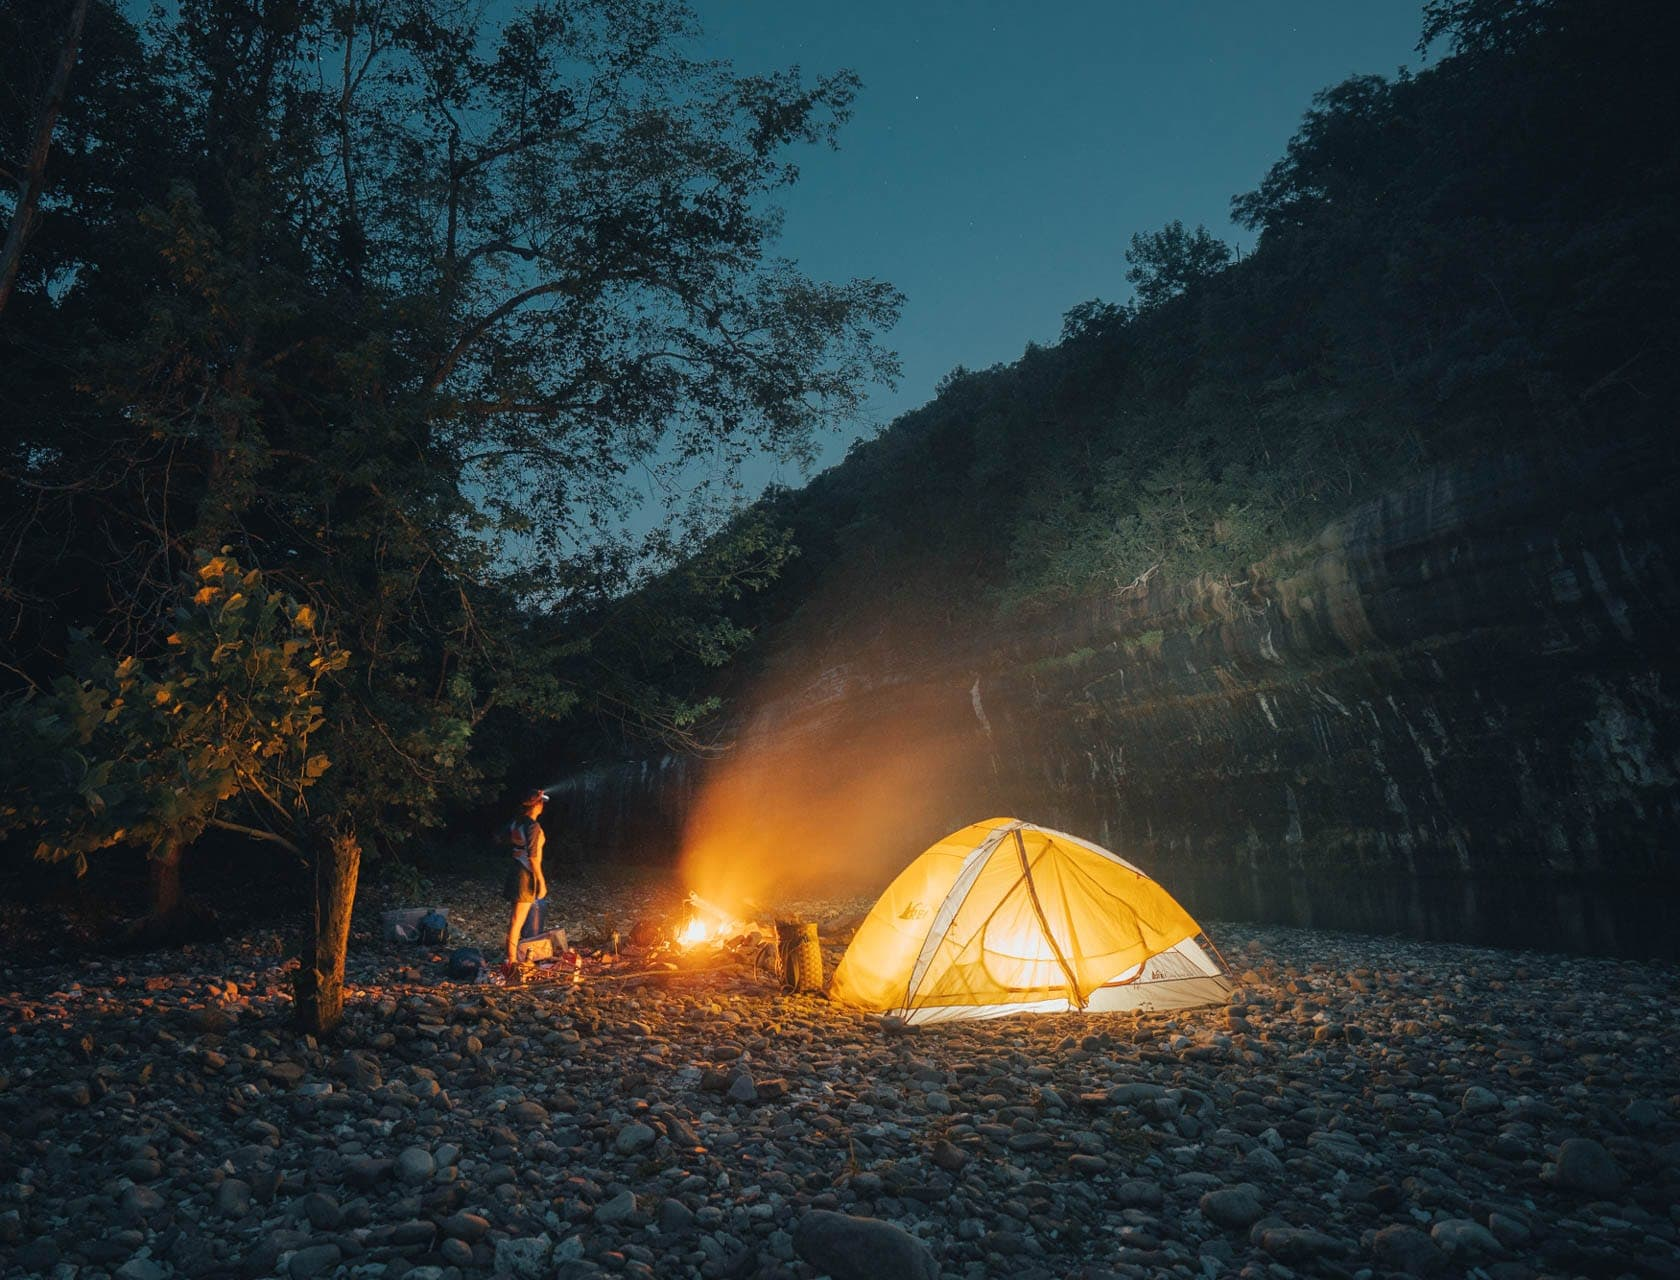 camping by the river and night stars